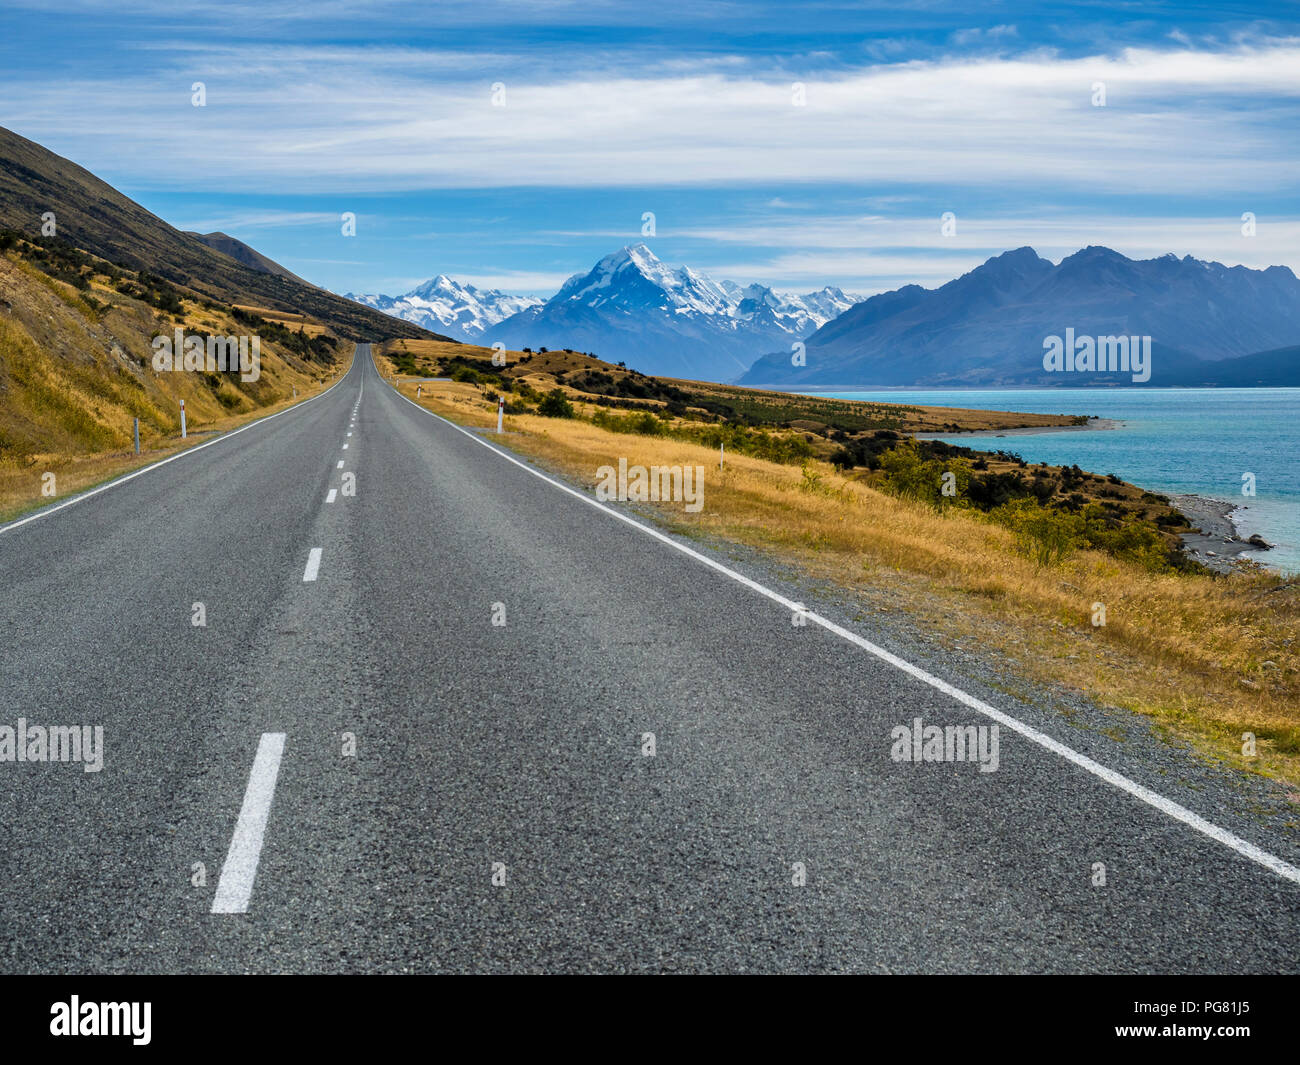 New Zealand, South Island, empty road with Aoraki Mount Cook and Lake Pukaki in the background - Stock Image